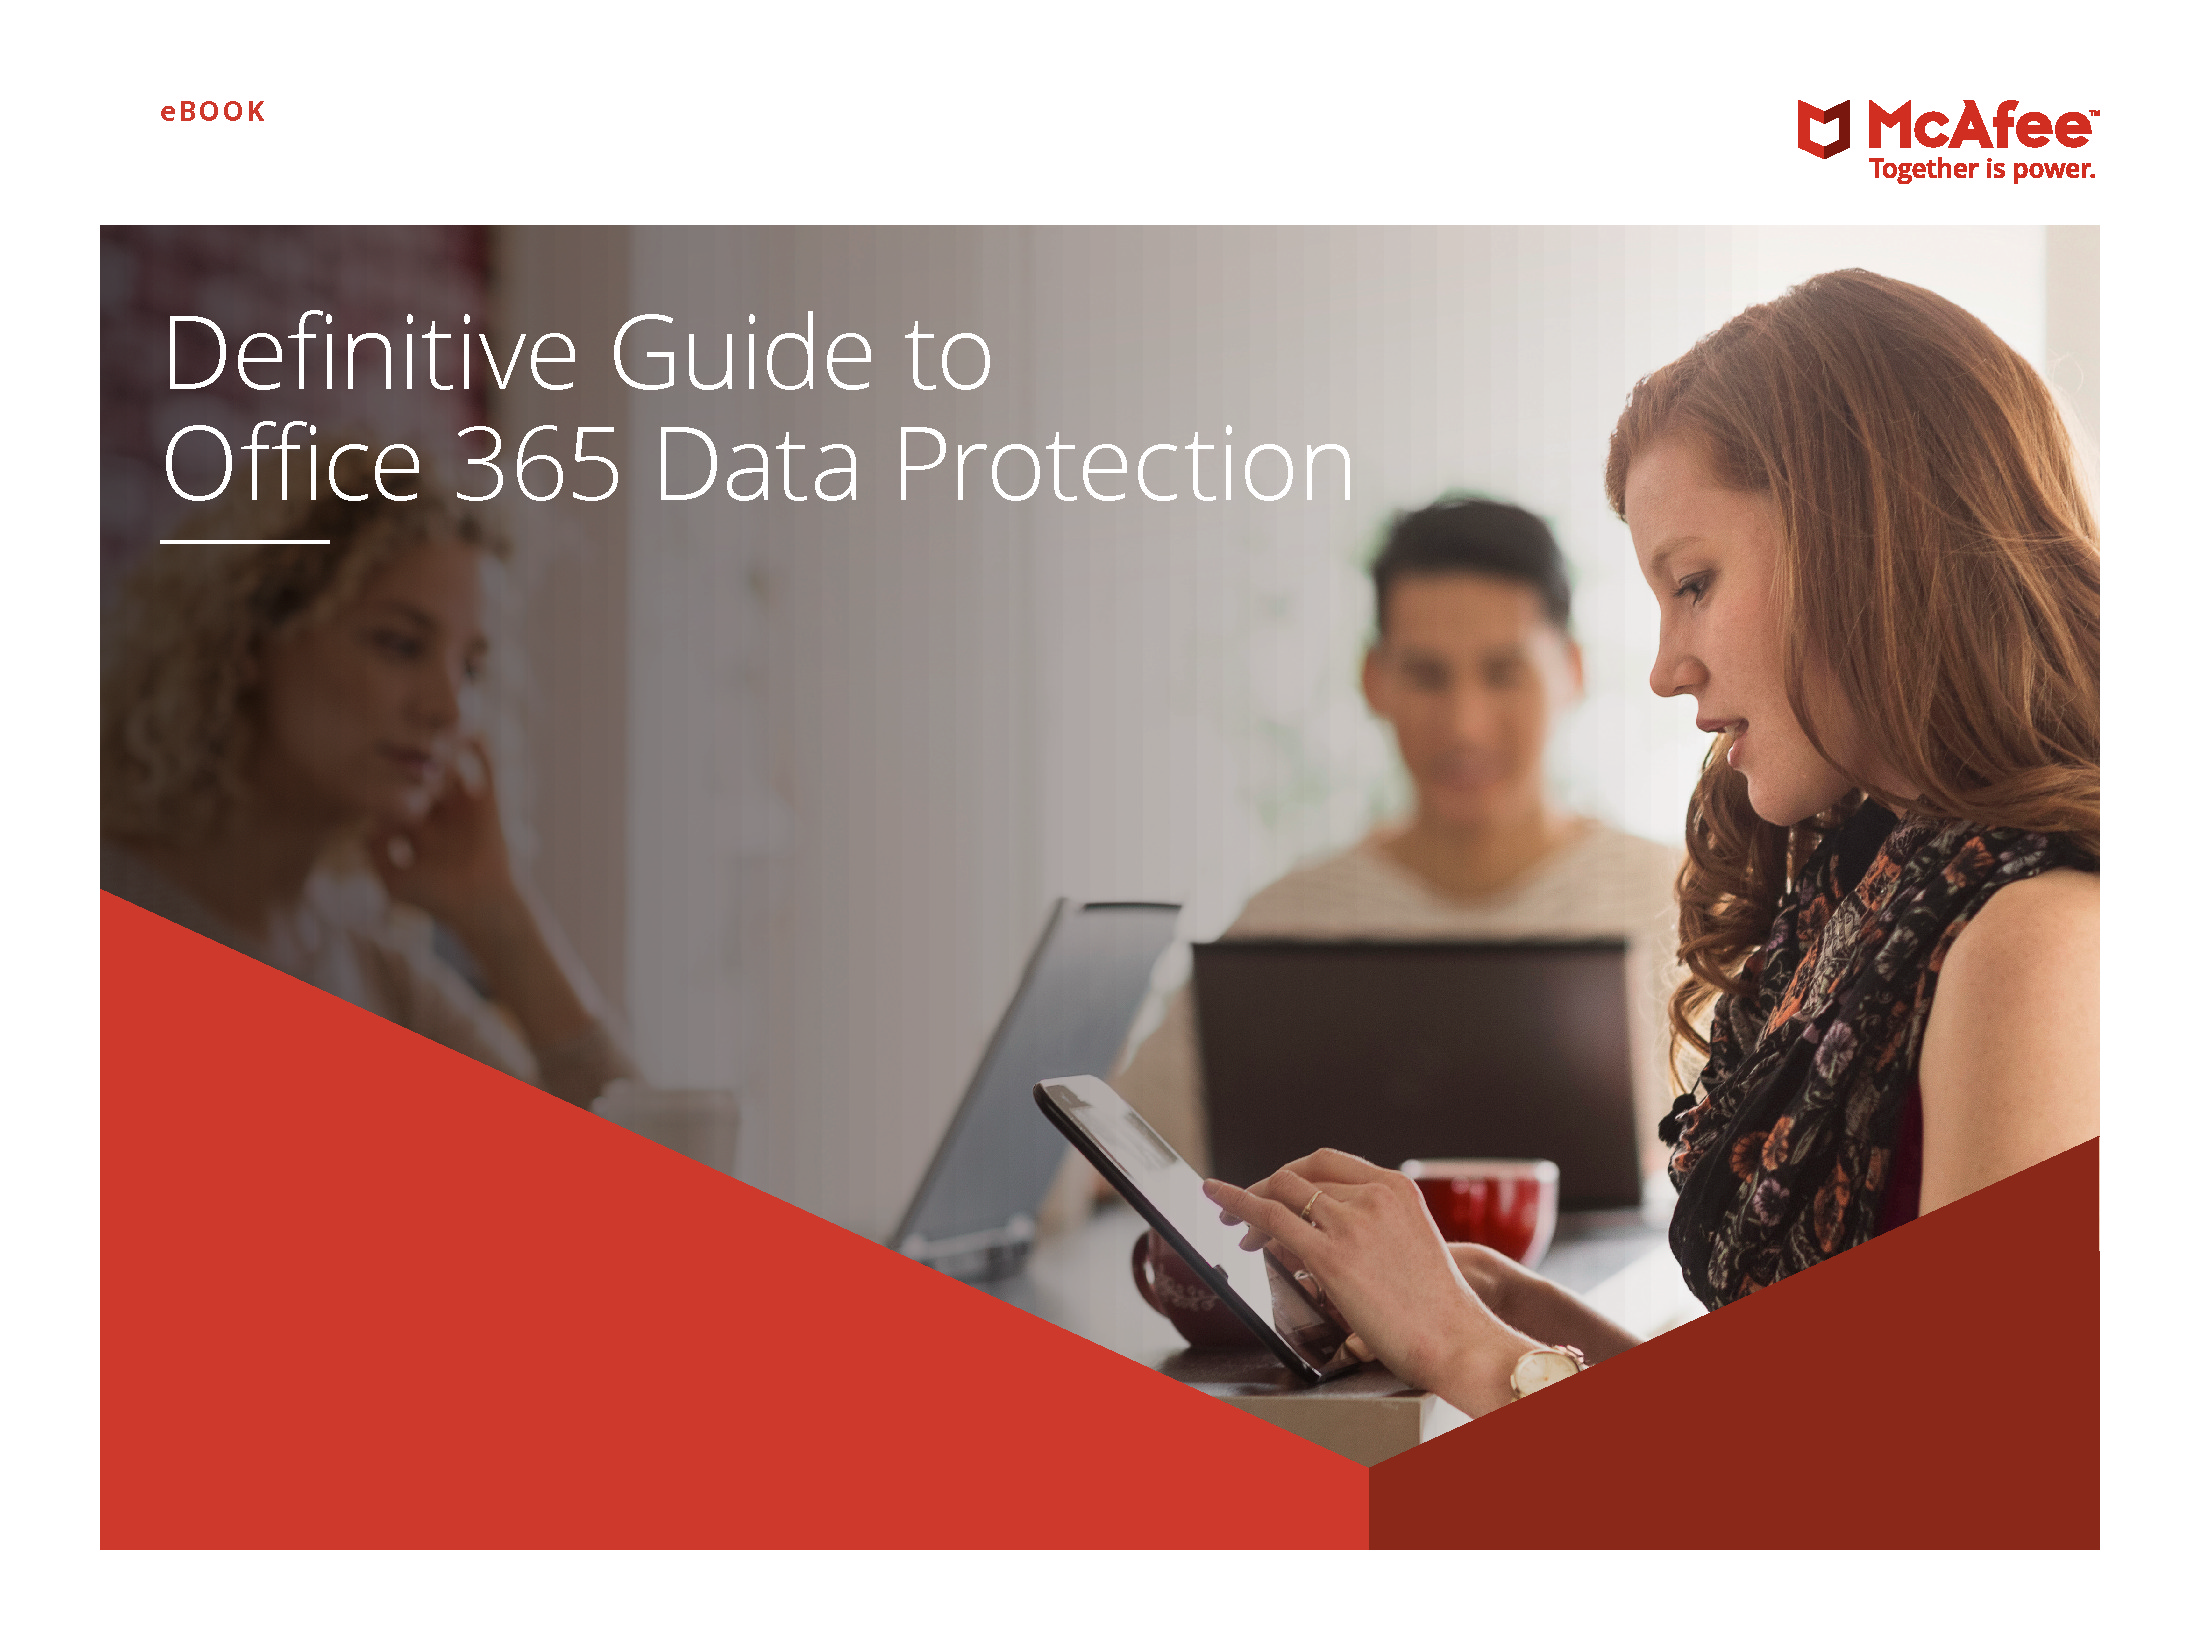 GT - McAfee - 2018 Security Channel  - Office 365 Data Protection